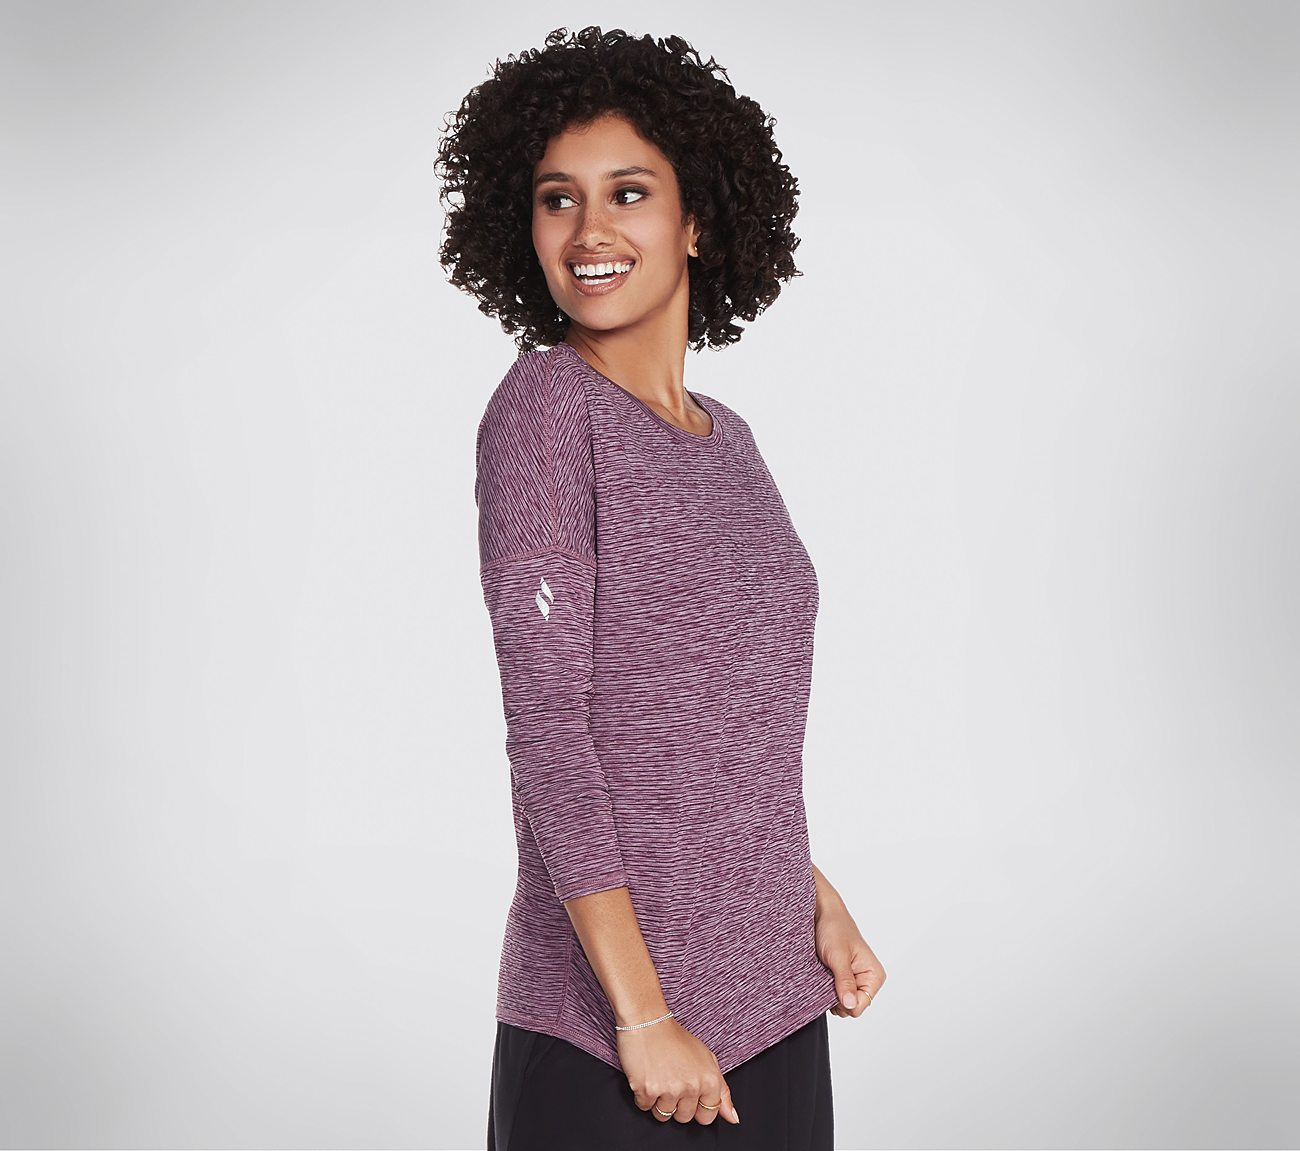 Skechers Apparel - Session Long Sleeve Top